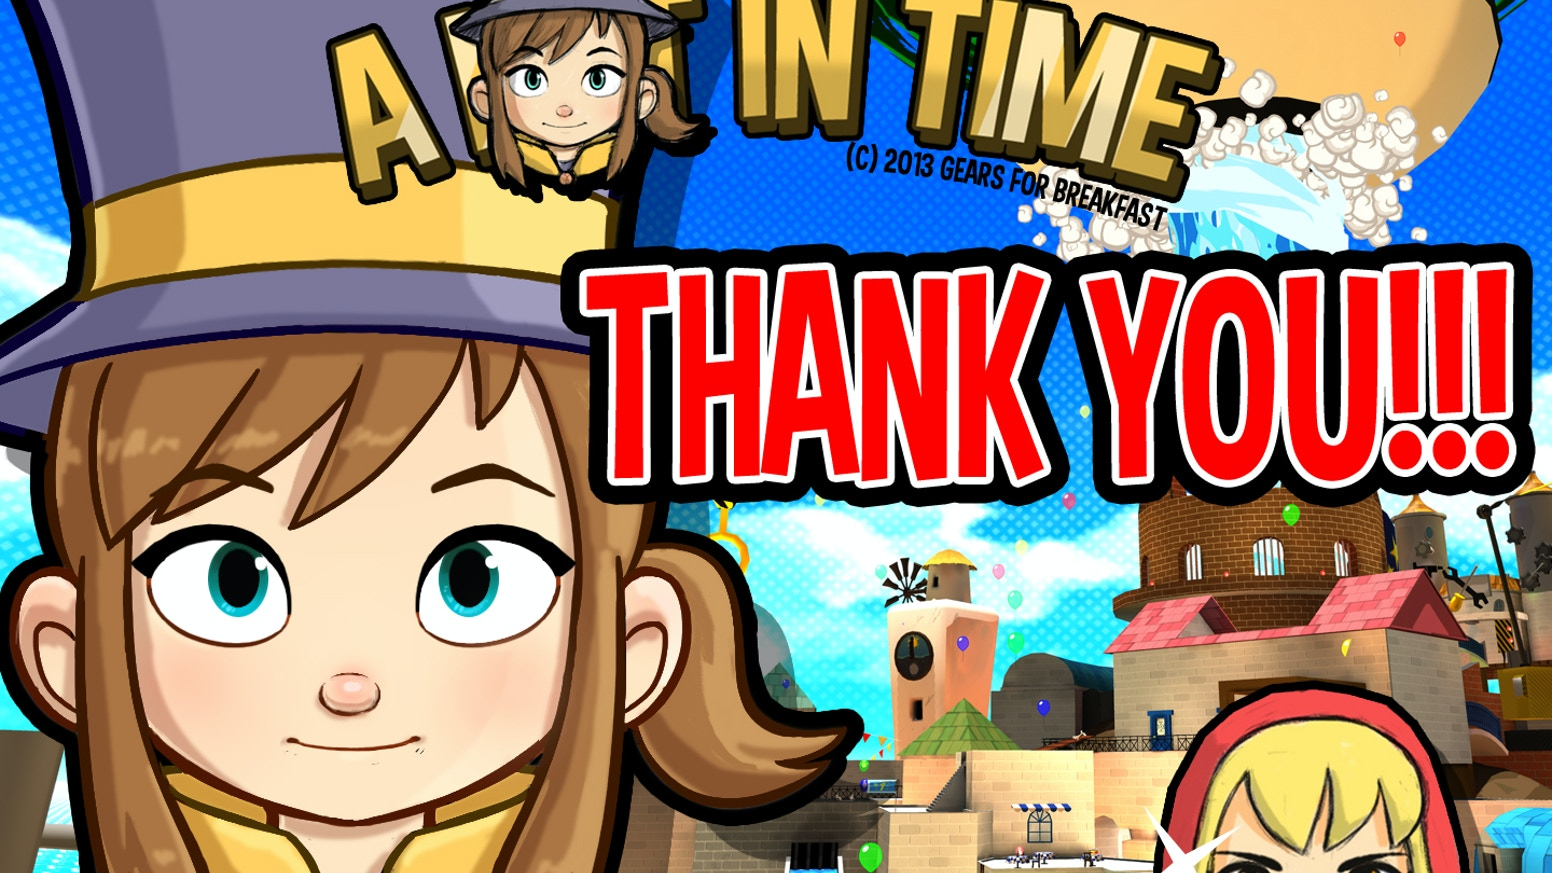 A Hat In Time 3d Collect A Thon Platformer By Gears For Breakfast Kickstarter